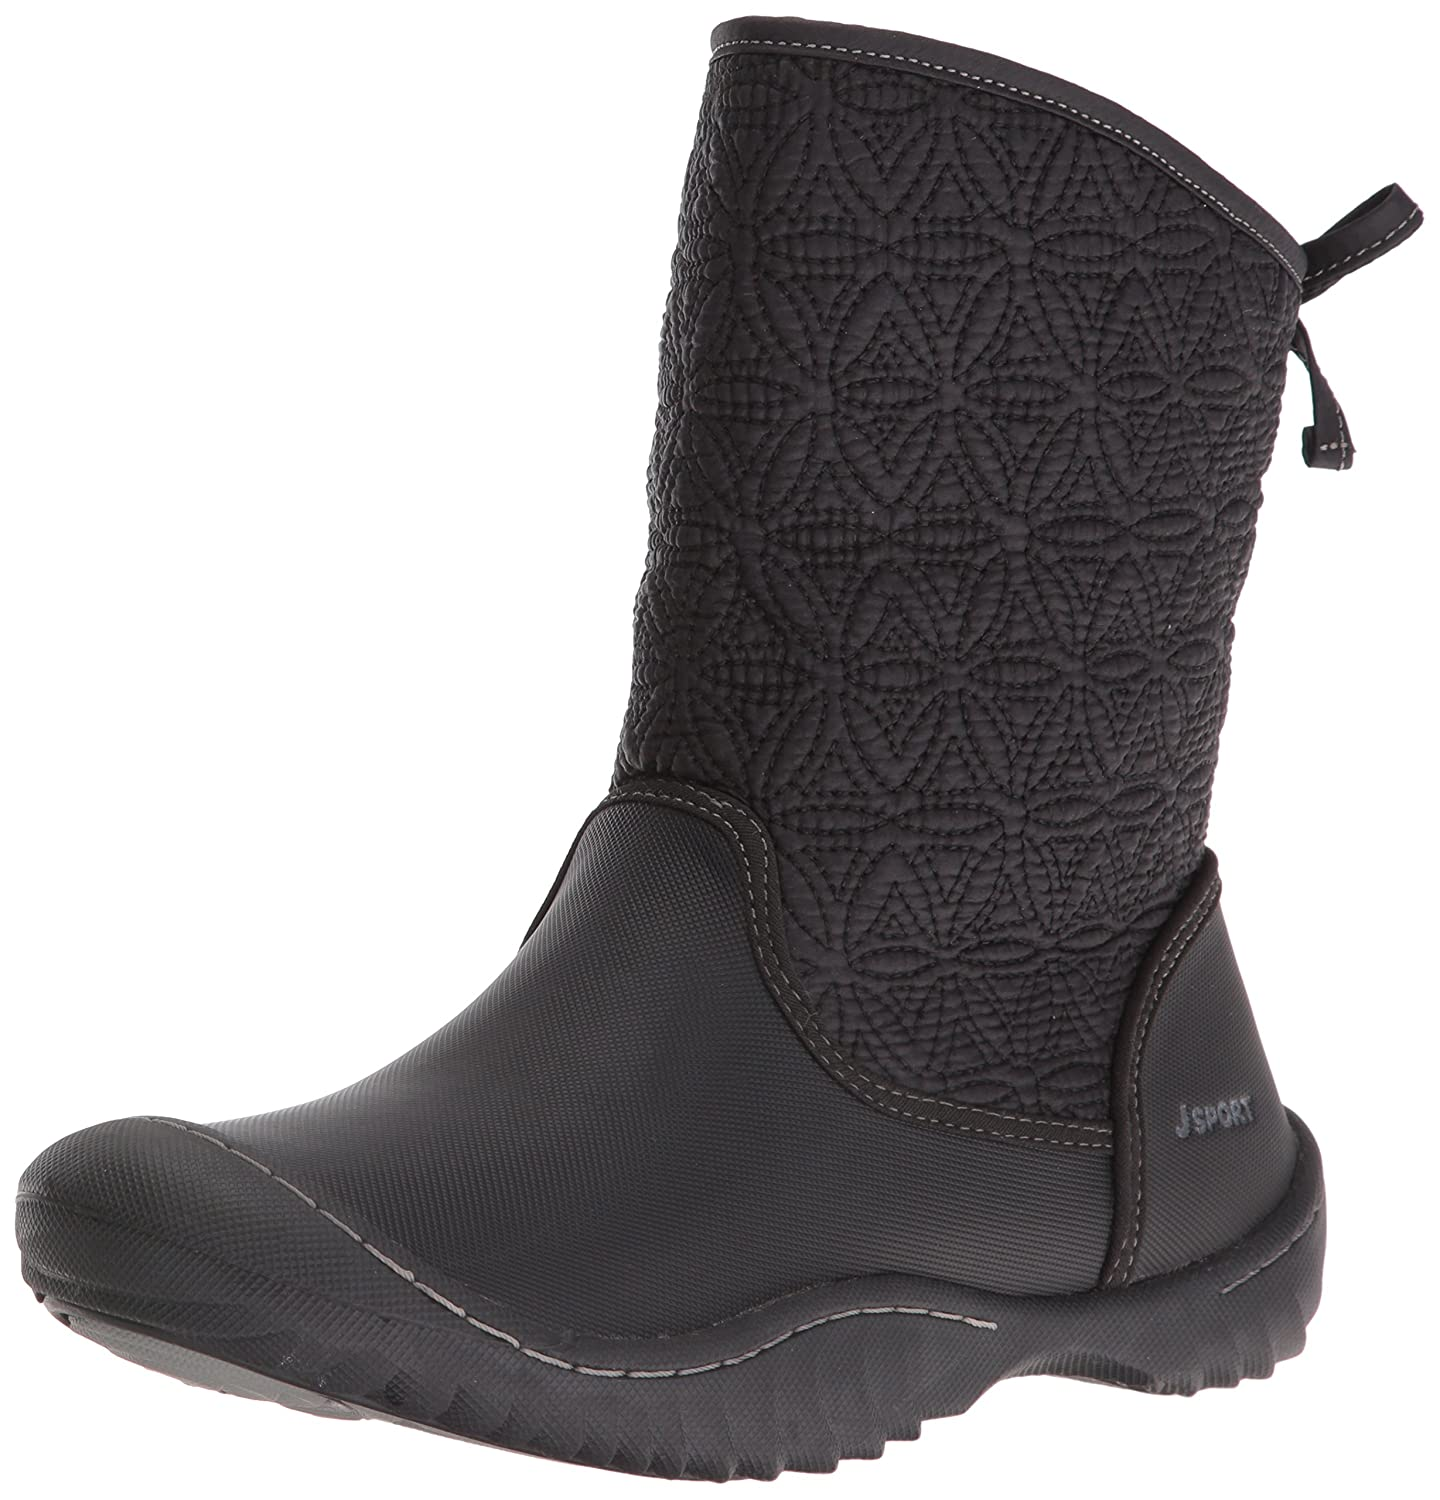 JSport by Jambu Women's Calgary Too Snow Boot B01GP62I2U 8.5 B(M) US|Black